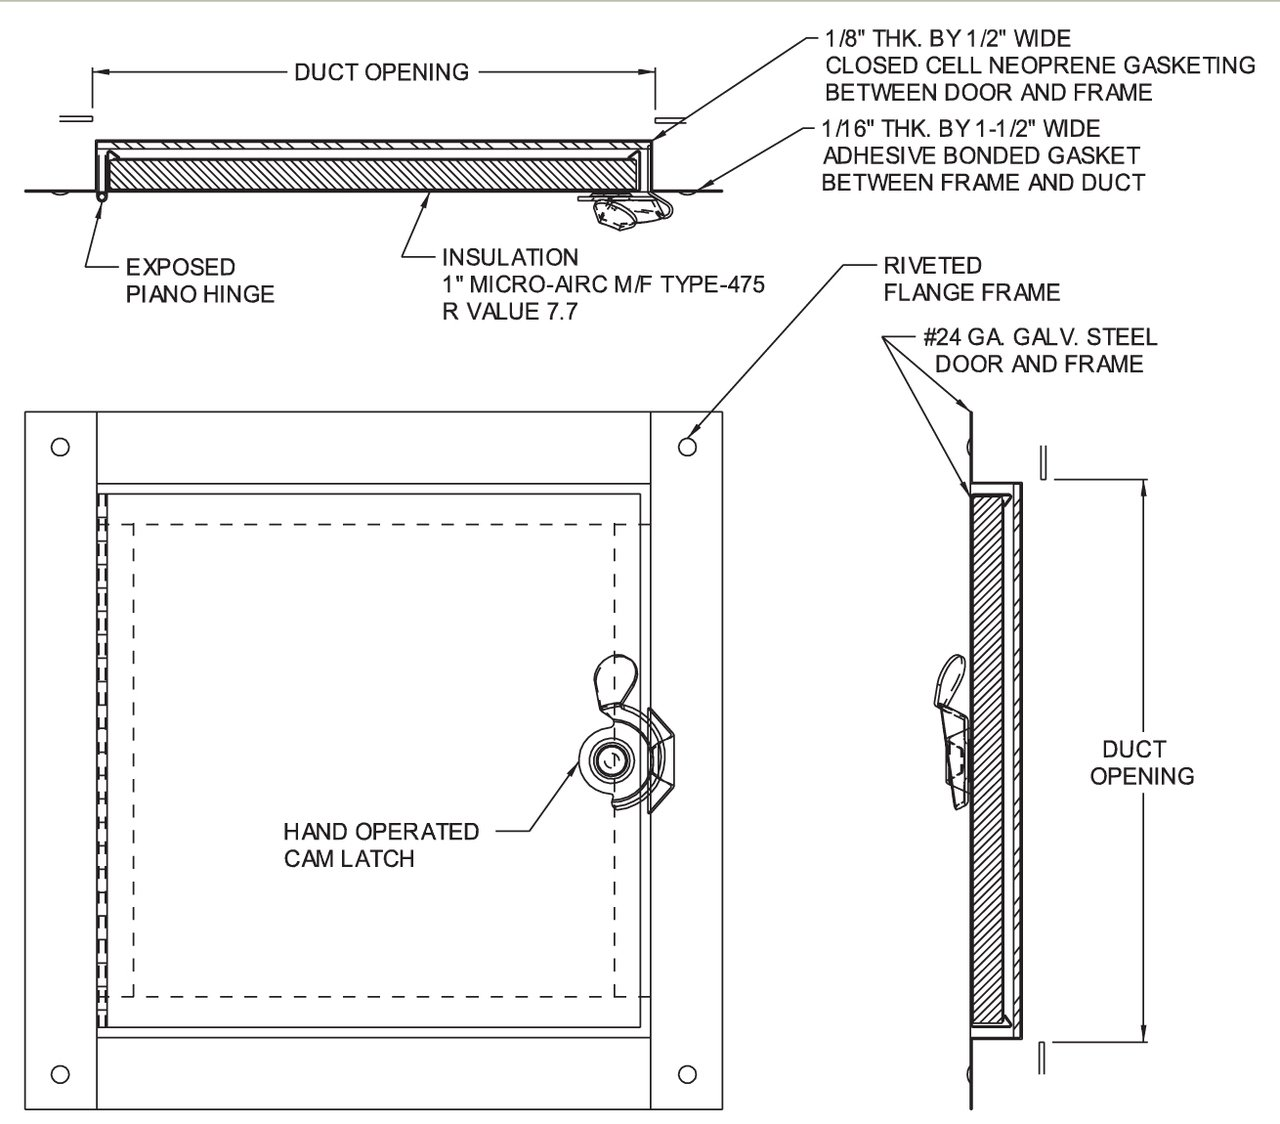 Acudor HD-5070-F Duct Access Door 10 x 10 For Fiberglass Ducts